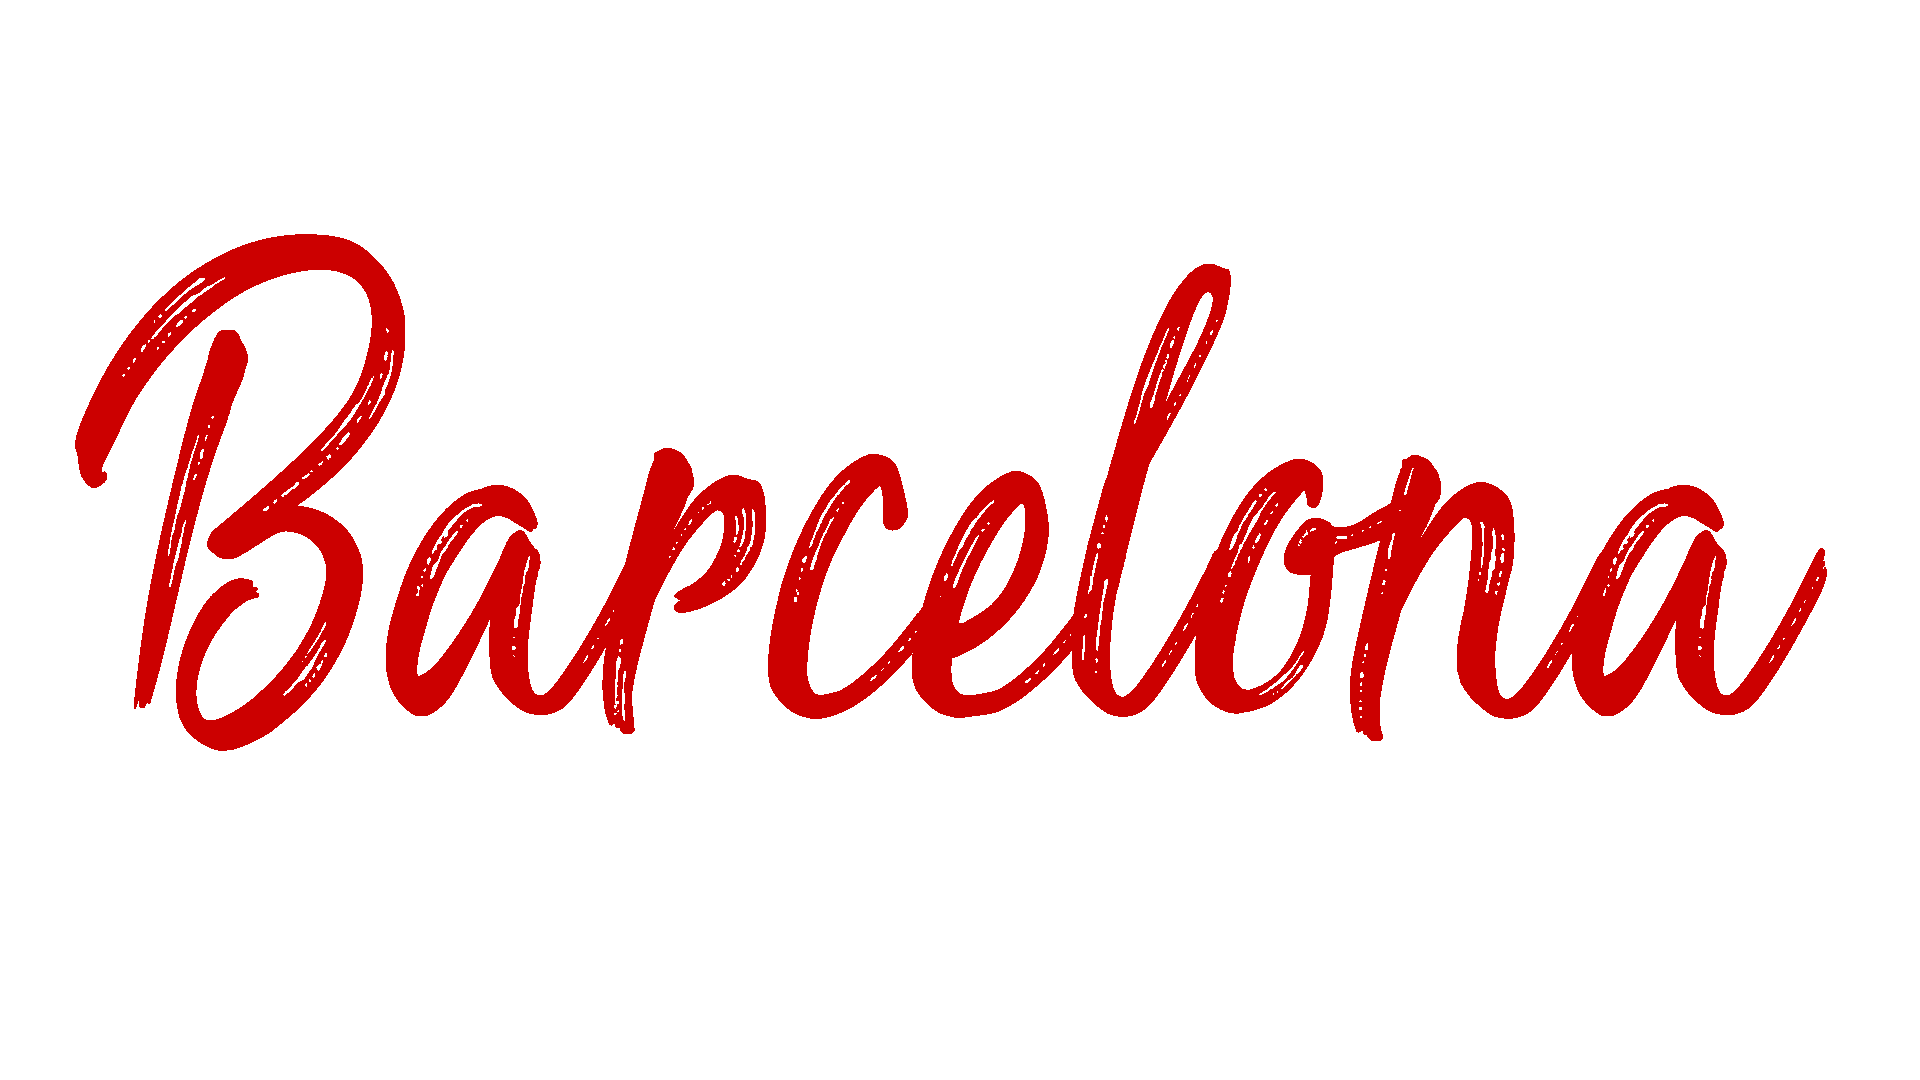 https://www.angelrielo.com/wp-content/uploads/2021/10/Barcelona.png